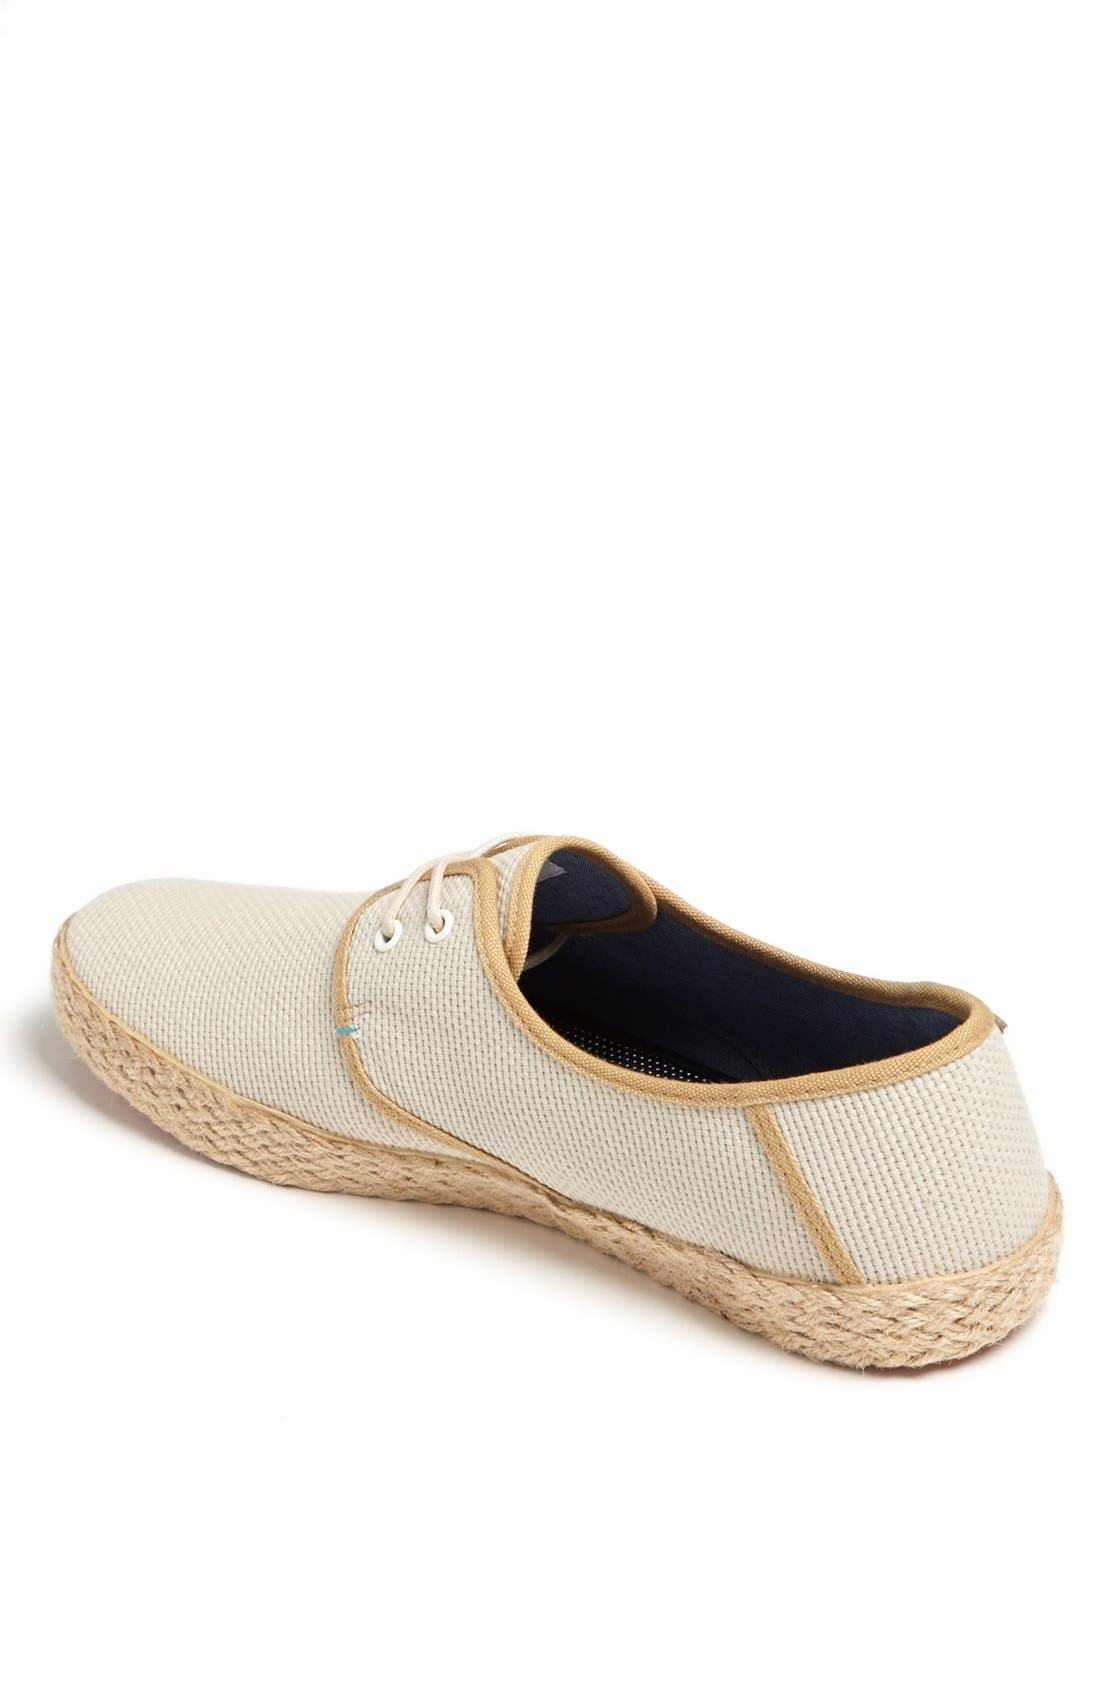 Alternate Image 3  - Ted Baker London 'Drilll 2' Espadrille Sneaker